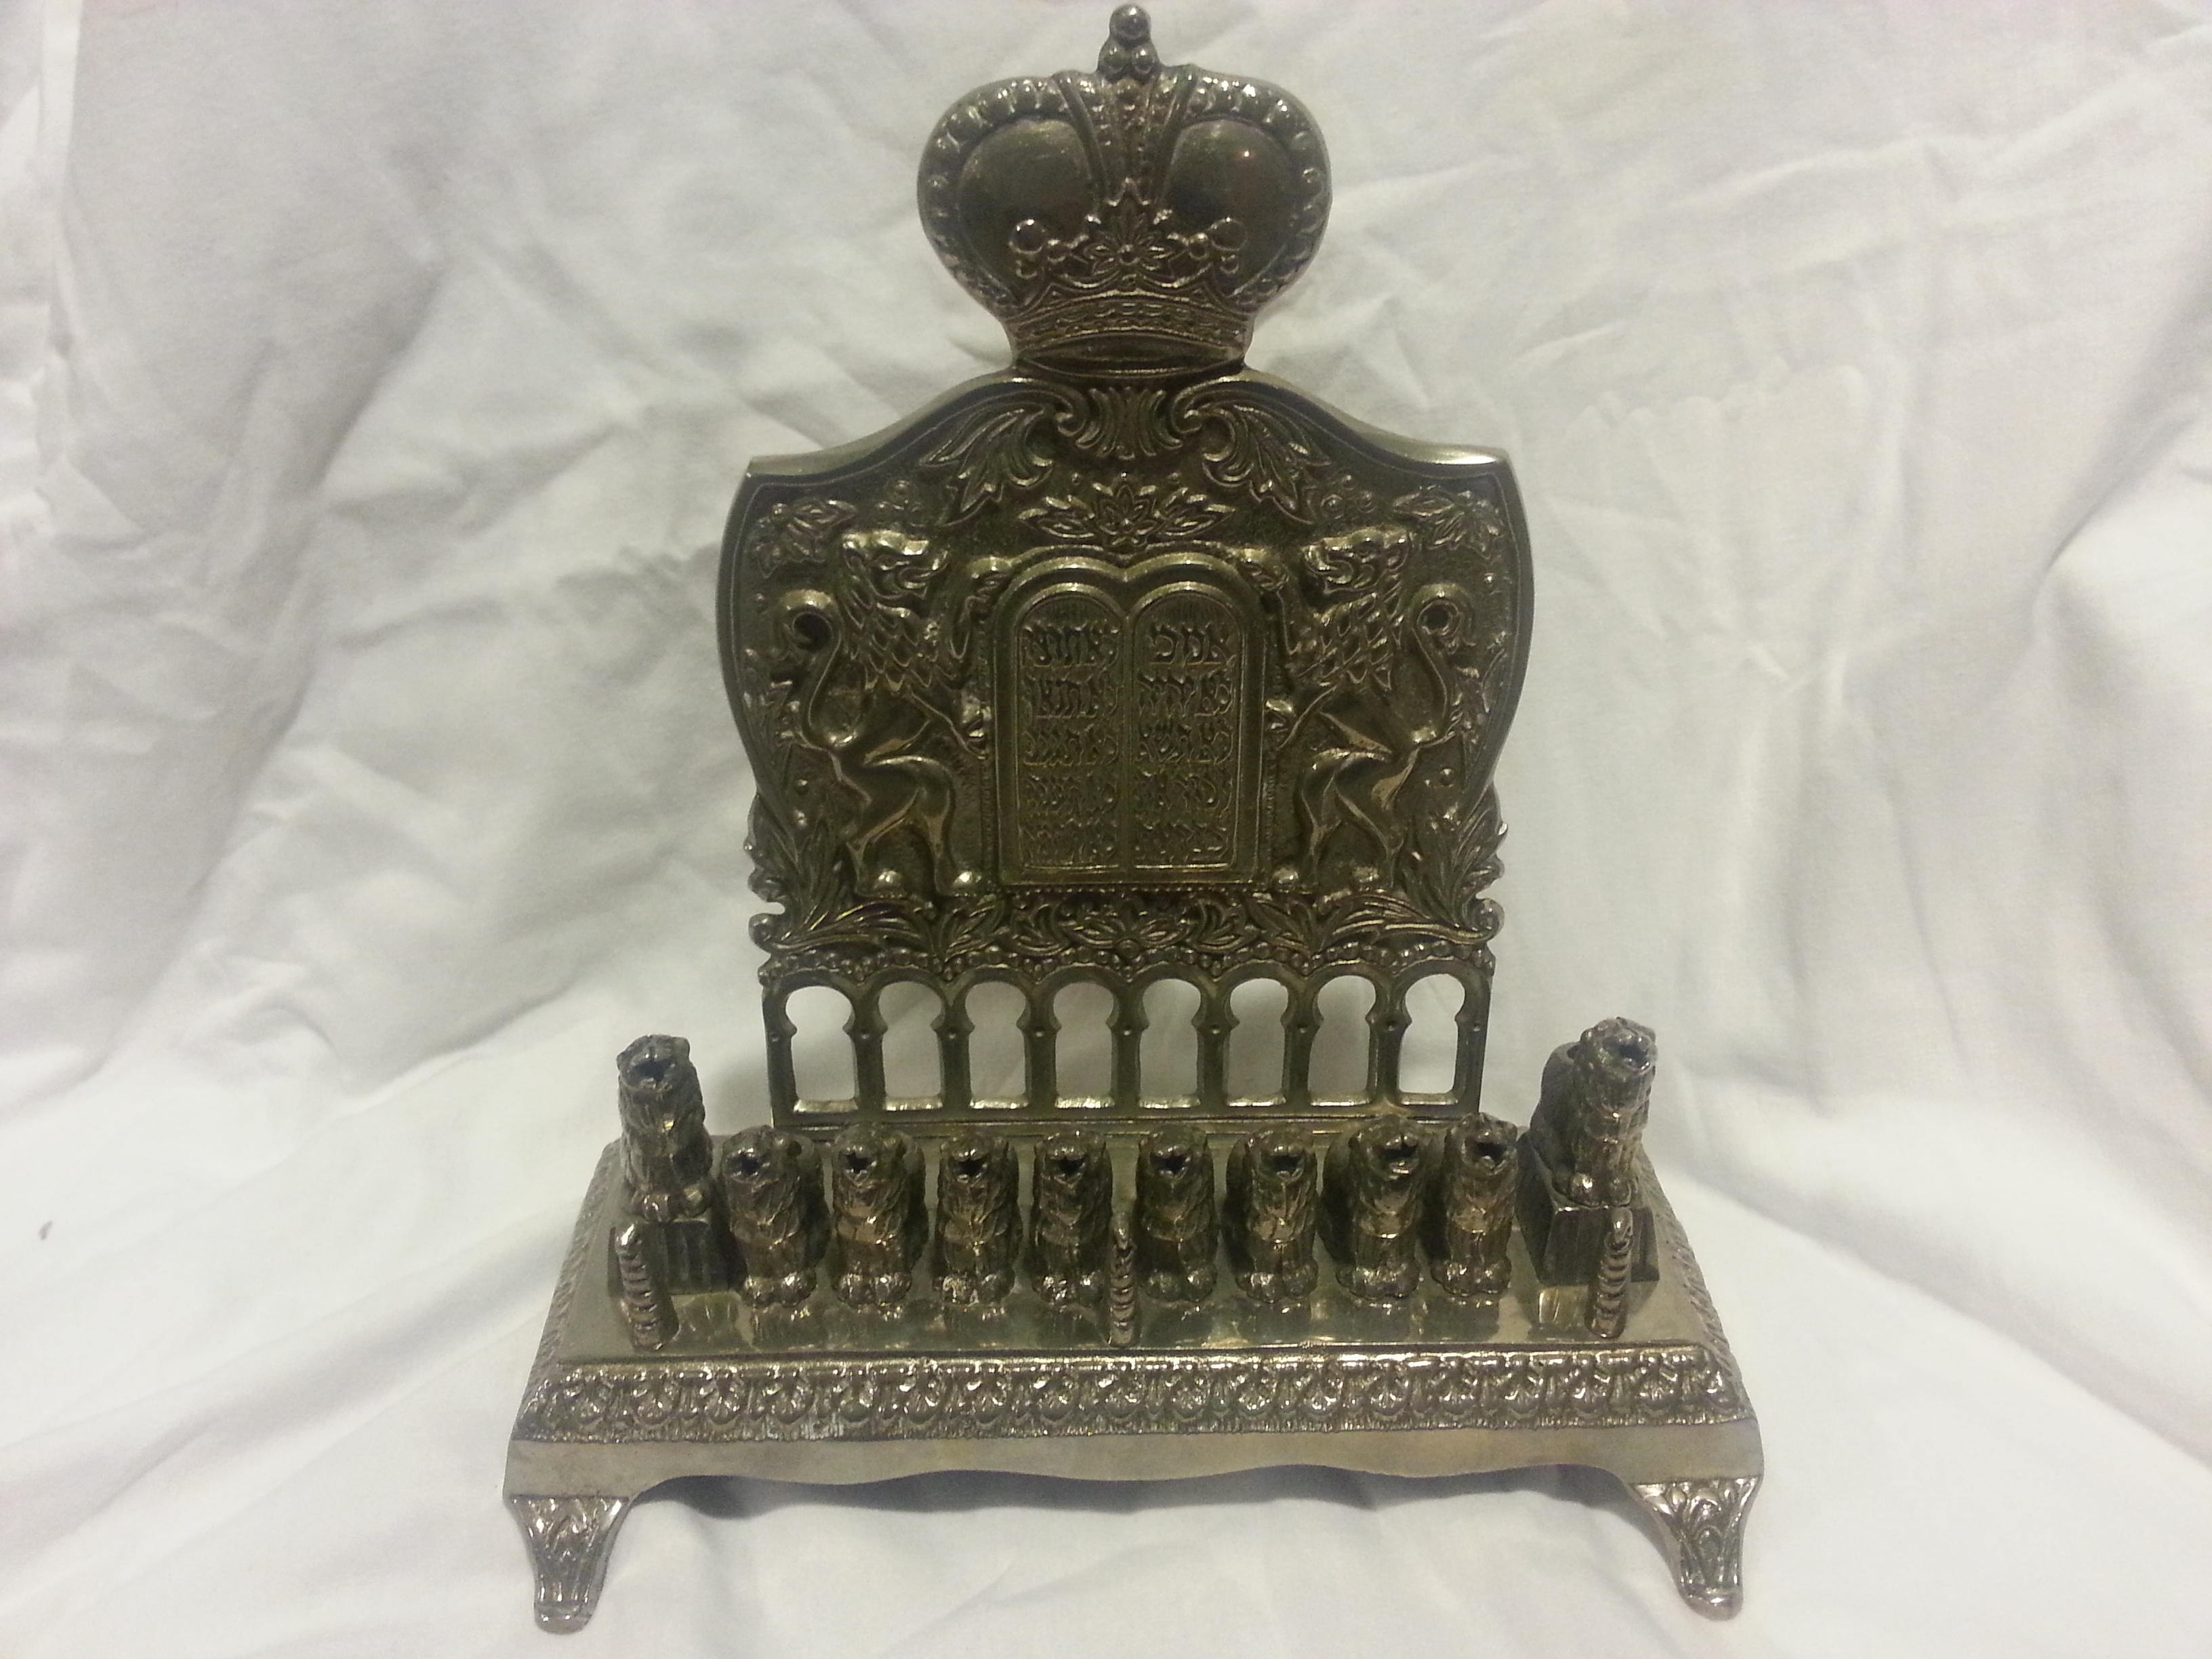 Antique menorah interest money value bit collecting for Valuable antiques and collectibles